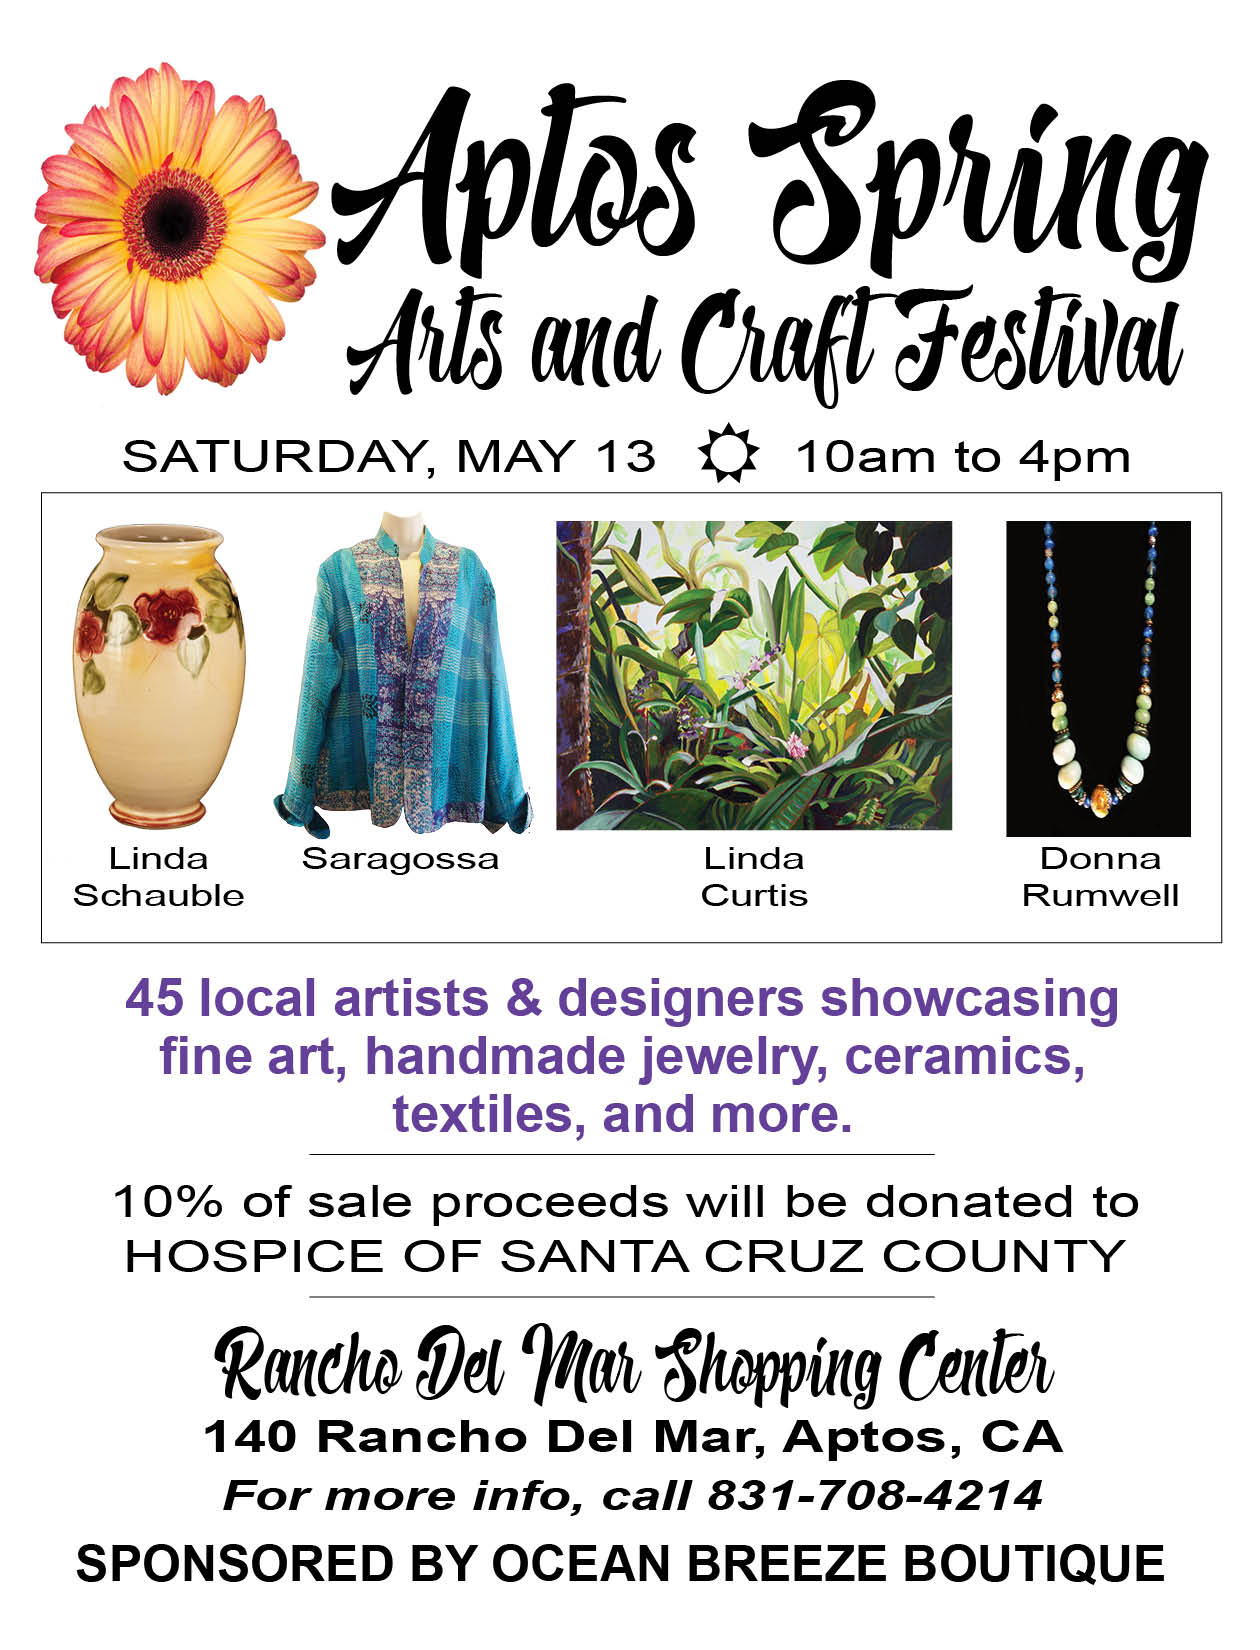 Aptos Spring Arts and Crafts Festival 2017